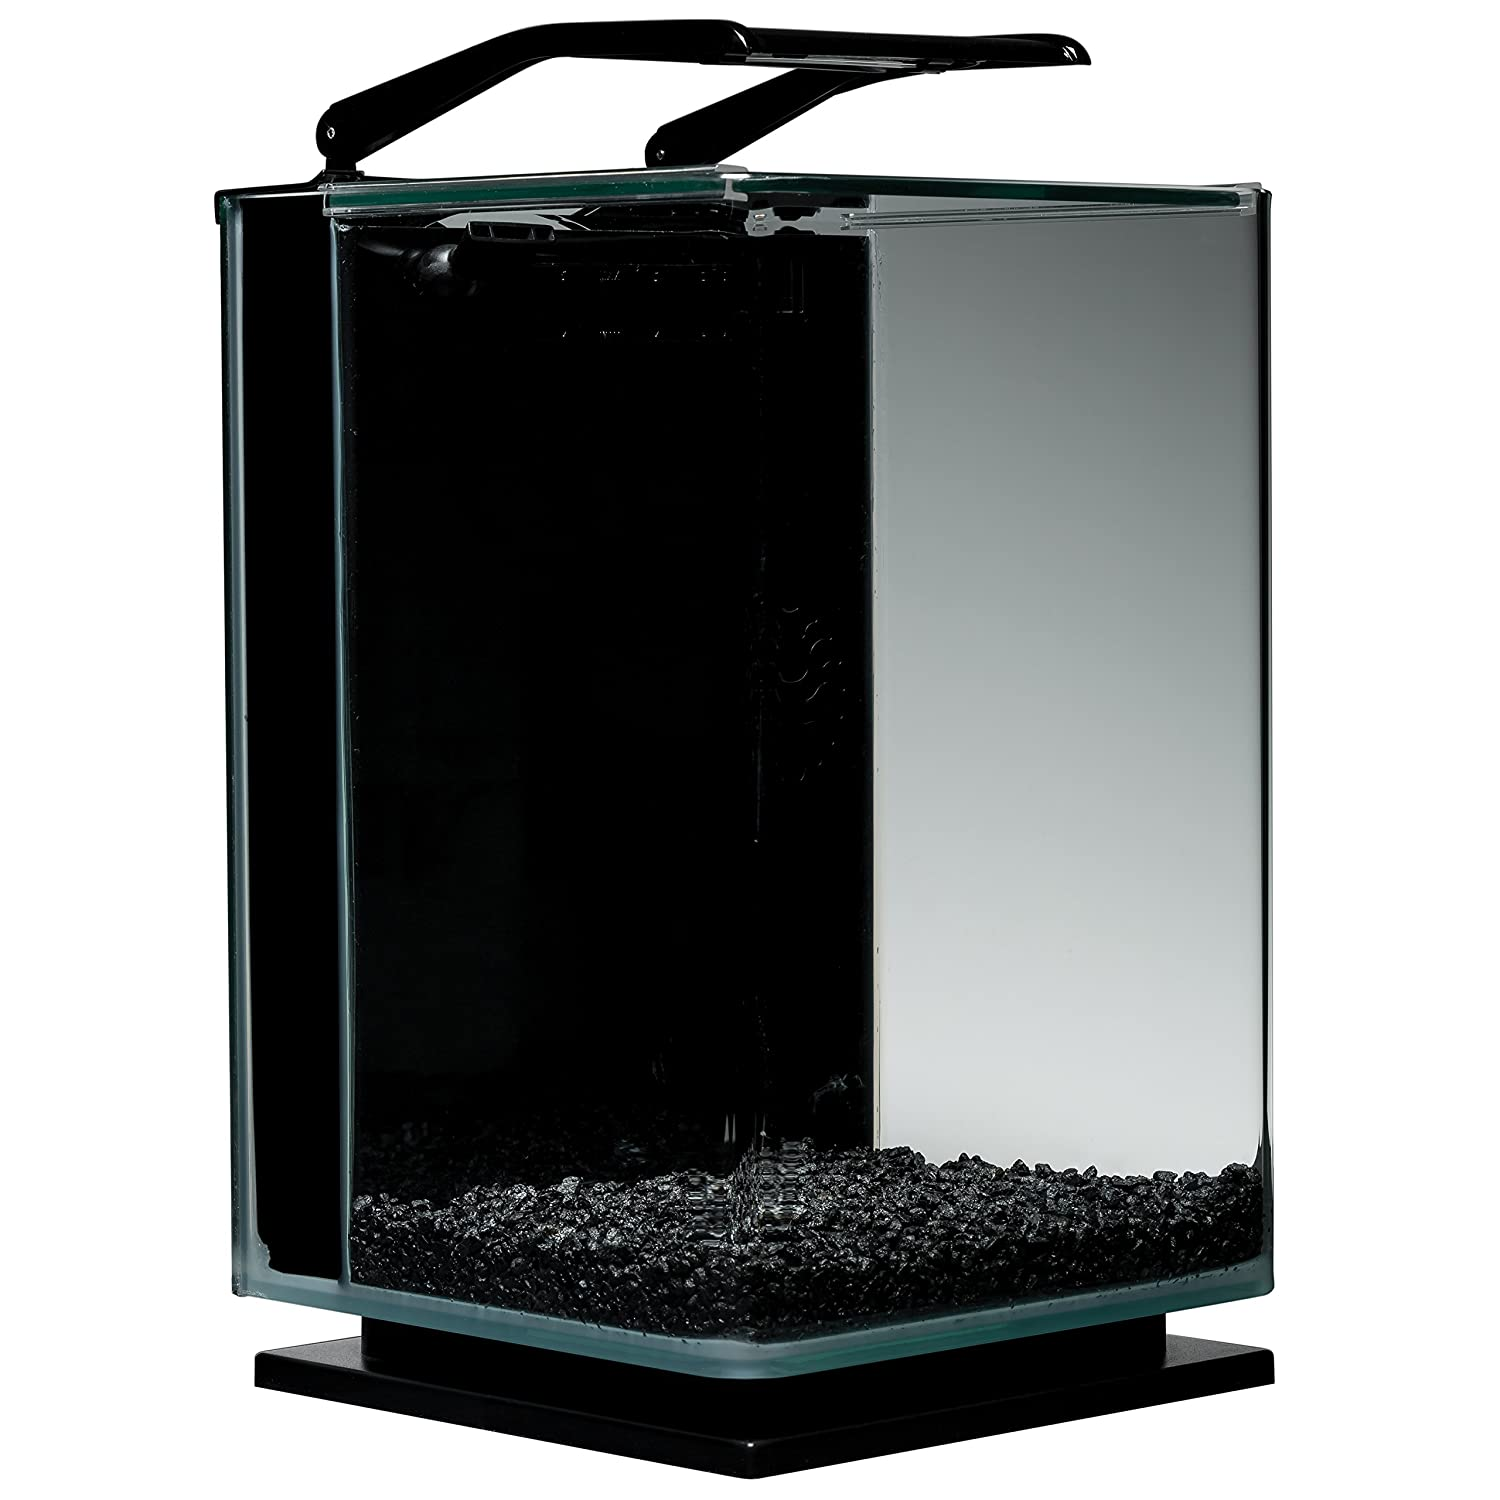 Marineland Ml90609 Portrait Aquarium Kit 5 Gallon